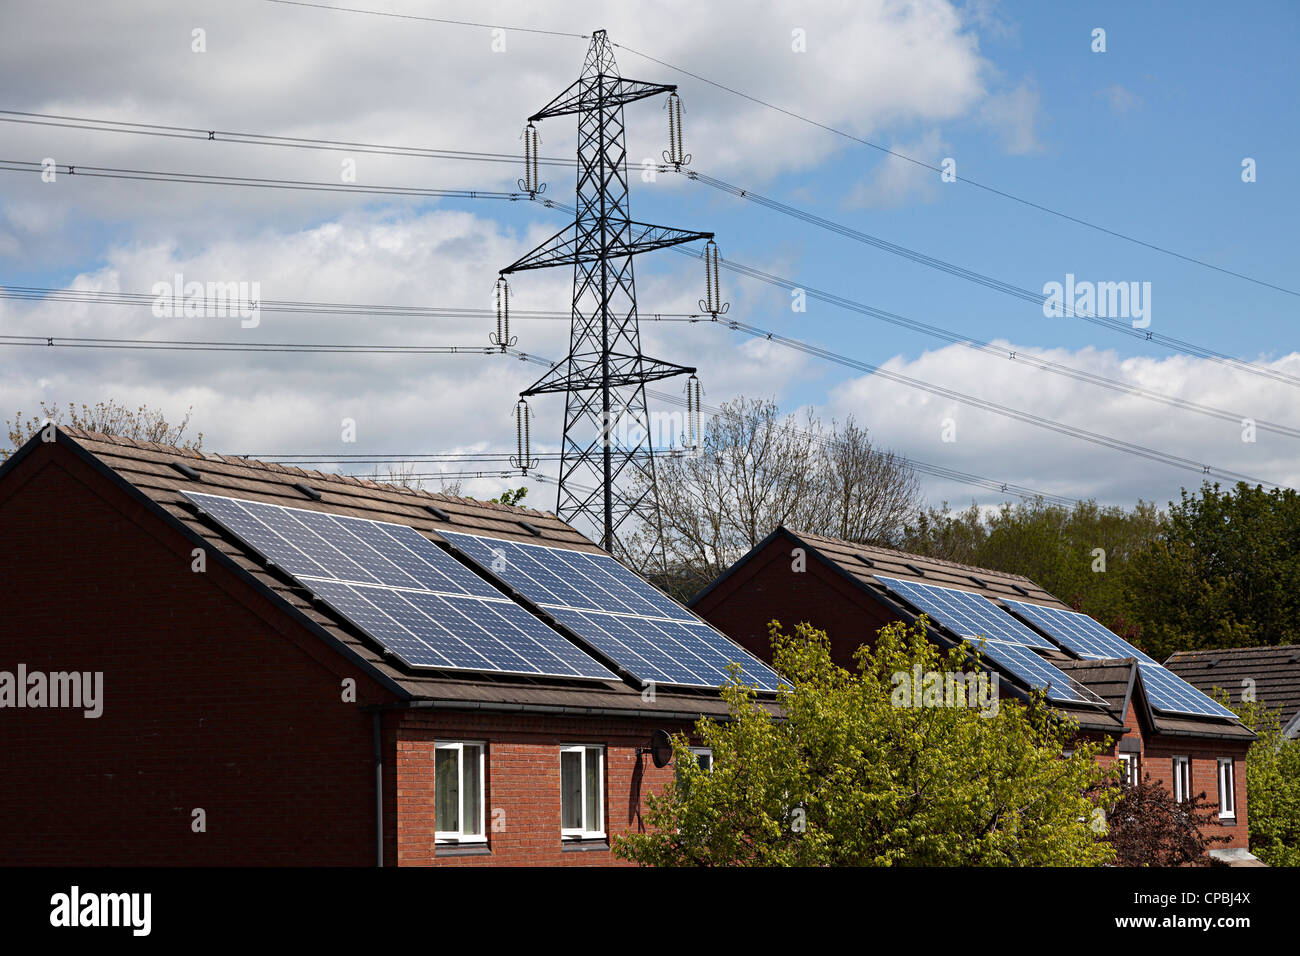 Solar panels on houses with electricity pylons behind, Wales, UK - Stock Image